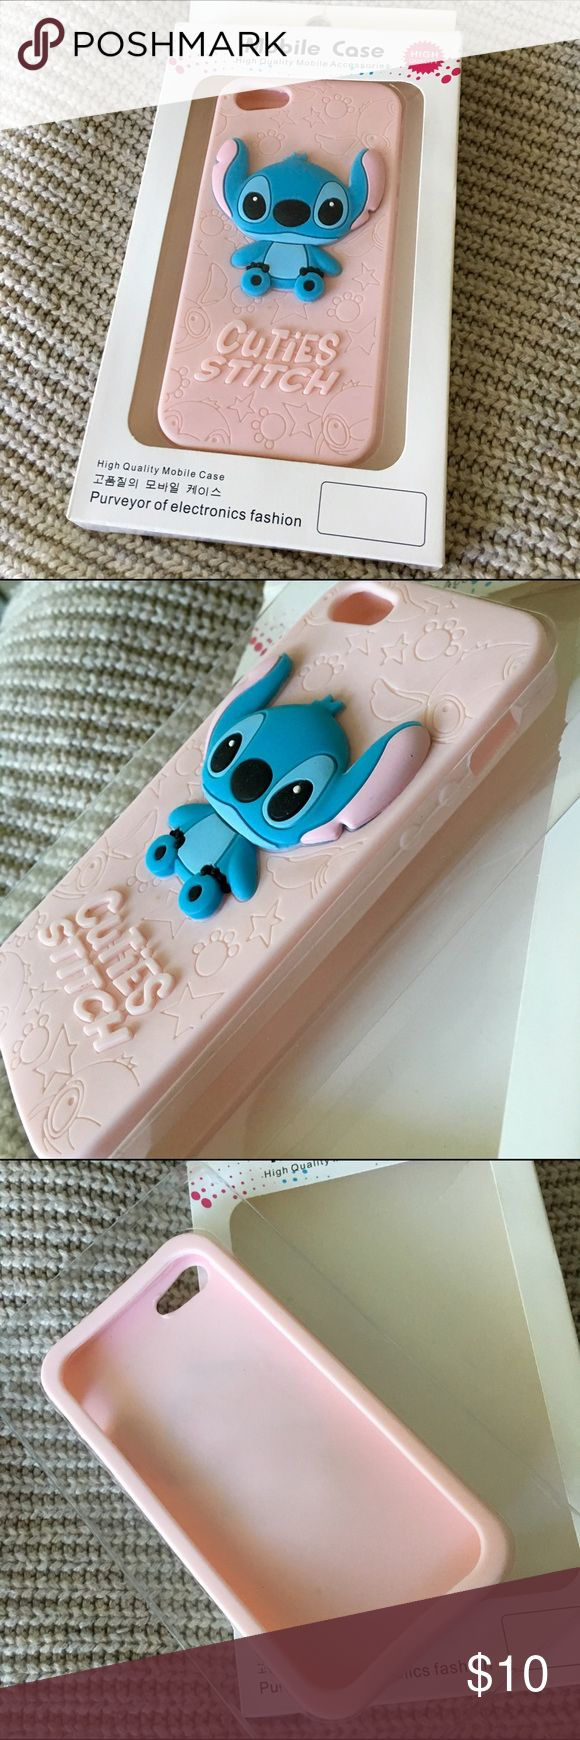 Stitch iPhone 5 Case Adorable Stitch IPhone 5 case, originally bought in Taiwan.  💌 Pre-loved. 💌 Reasonable offers considered. 💌 Please ask questions if any. Accessories Phone Cases